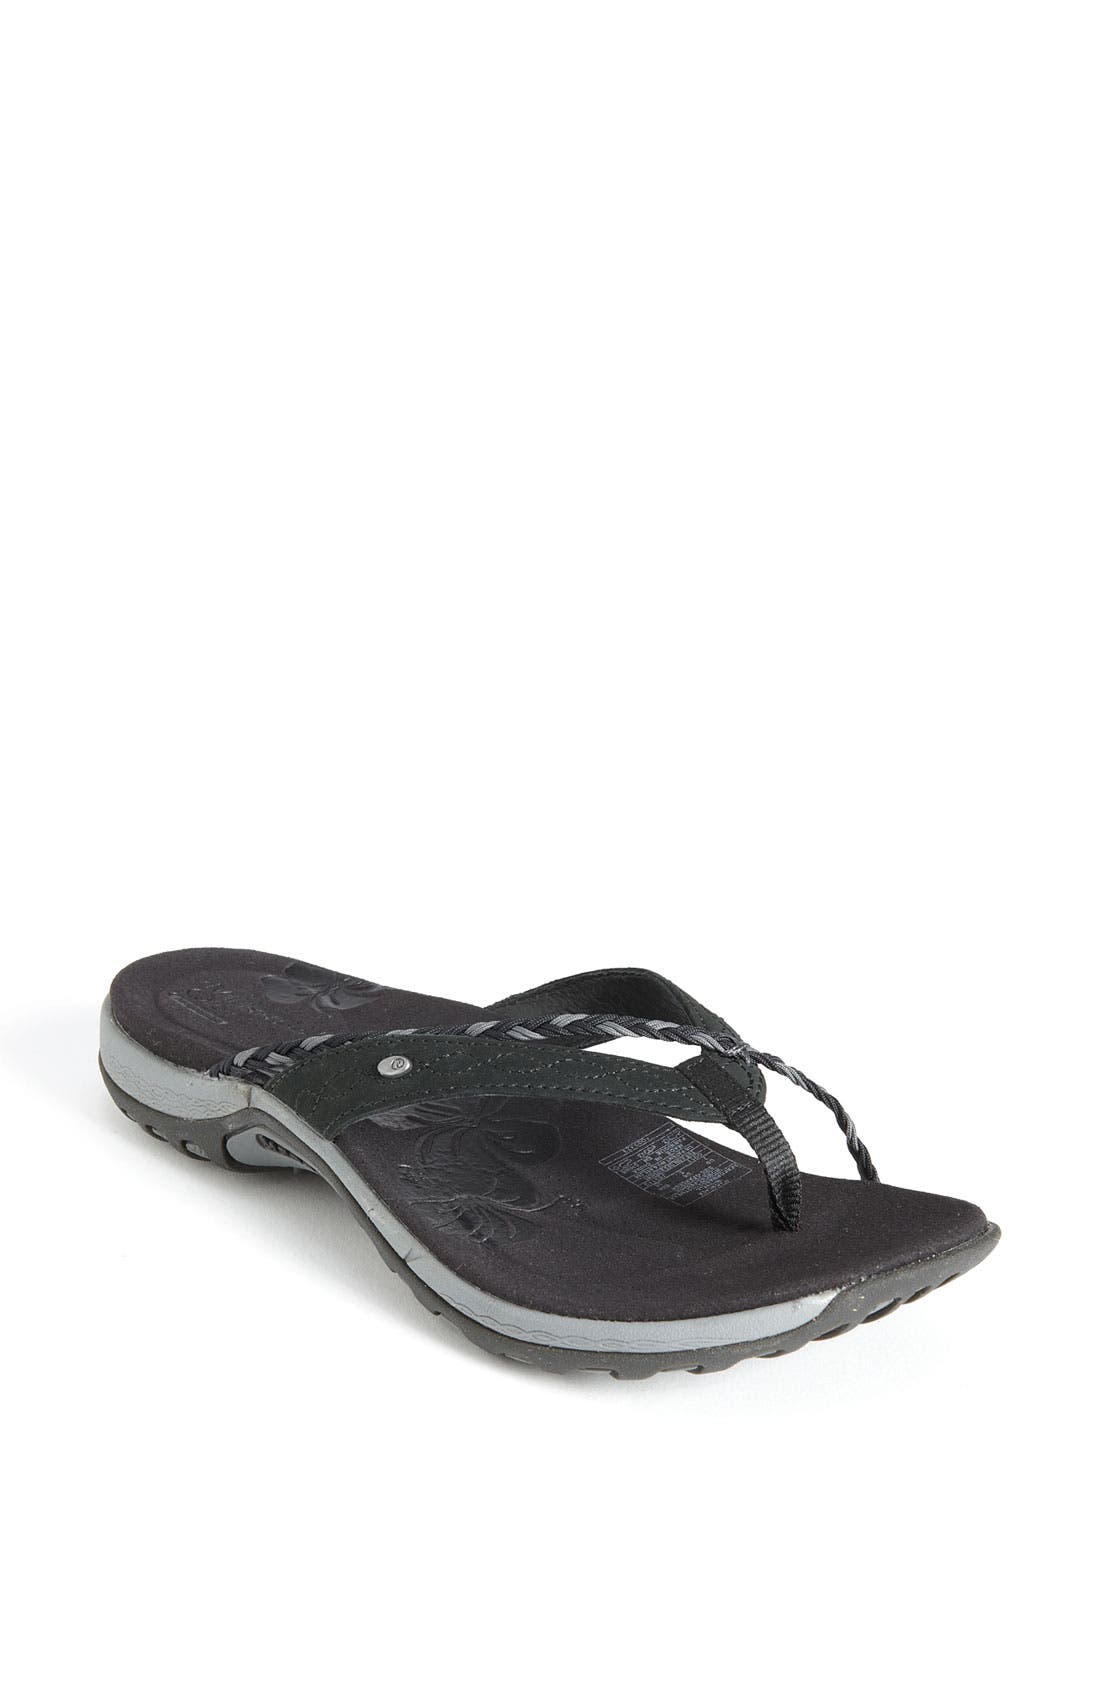 Alternate Image 1 Selected - Merrell 'Lilac' Sandal